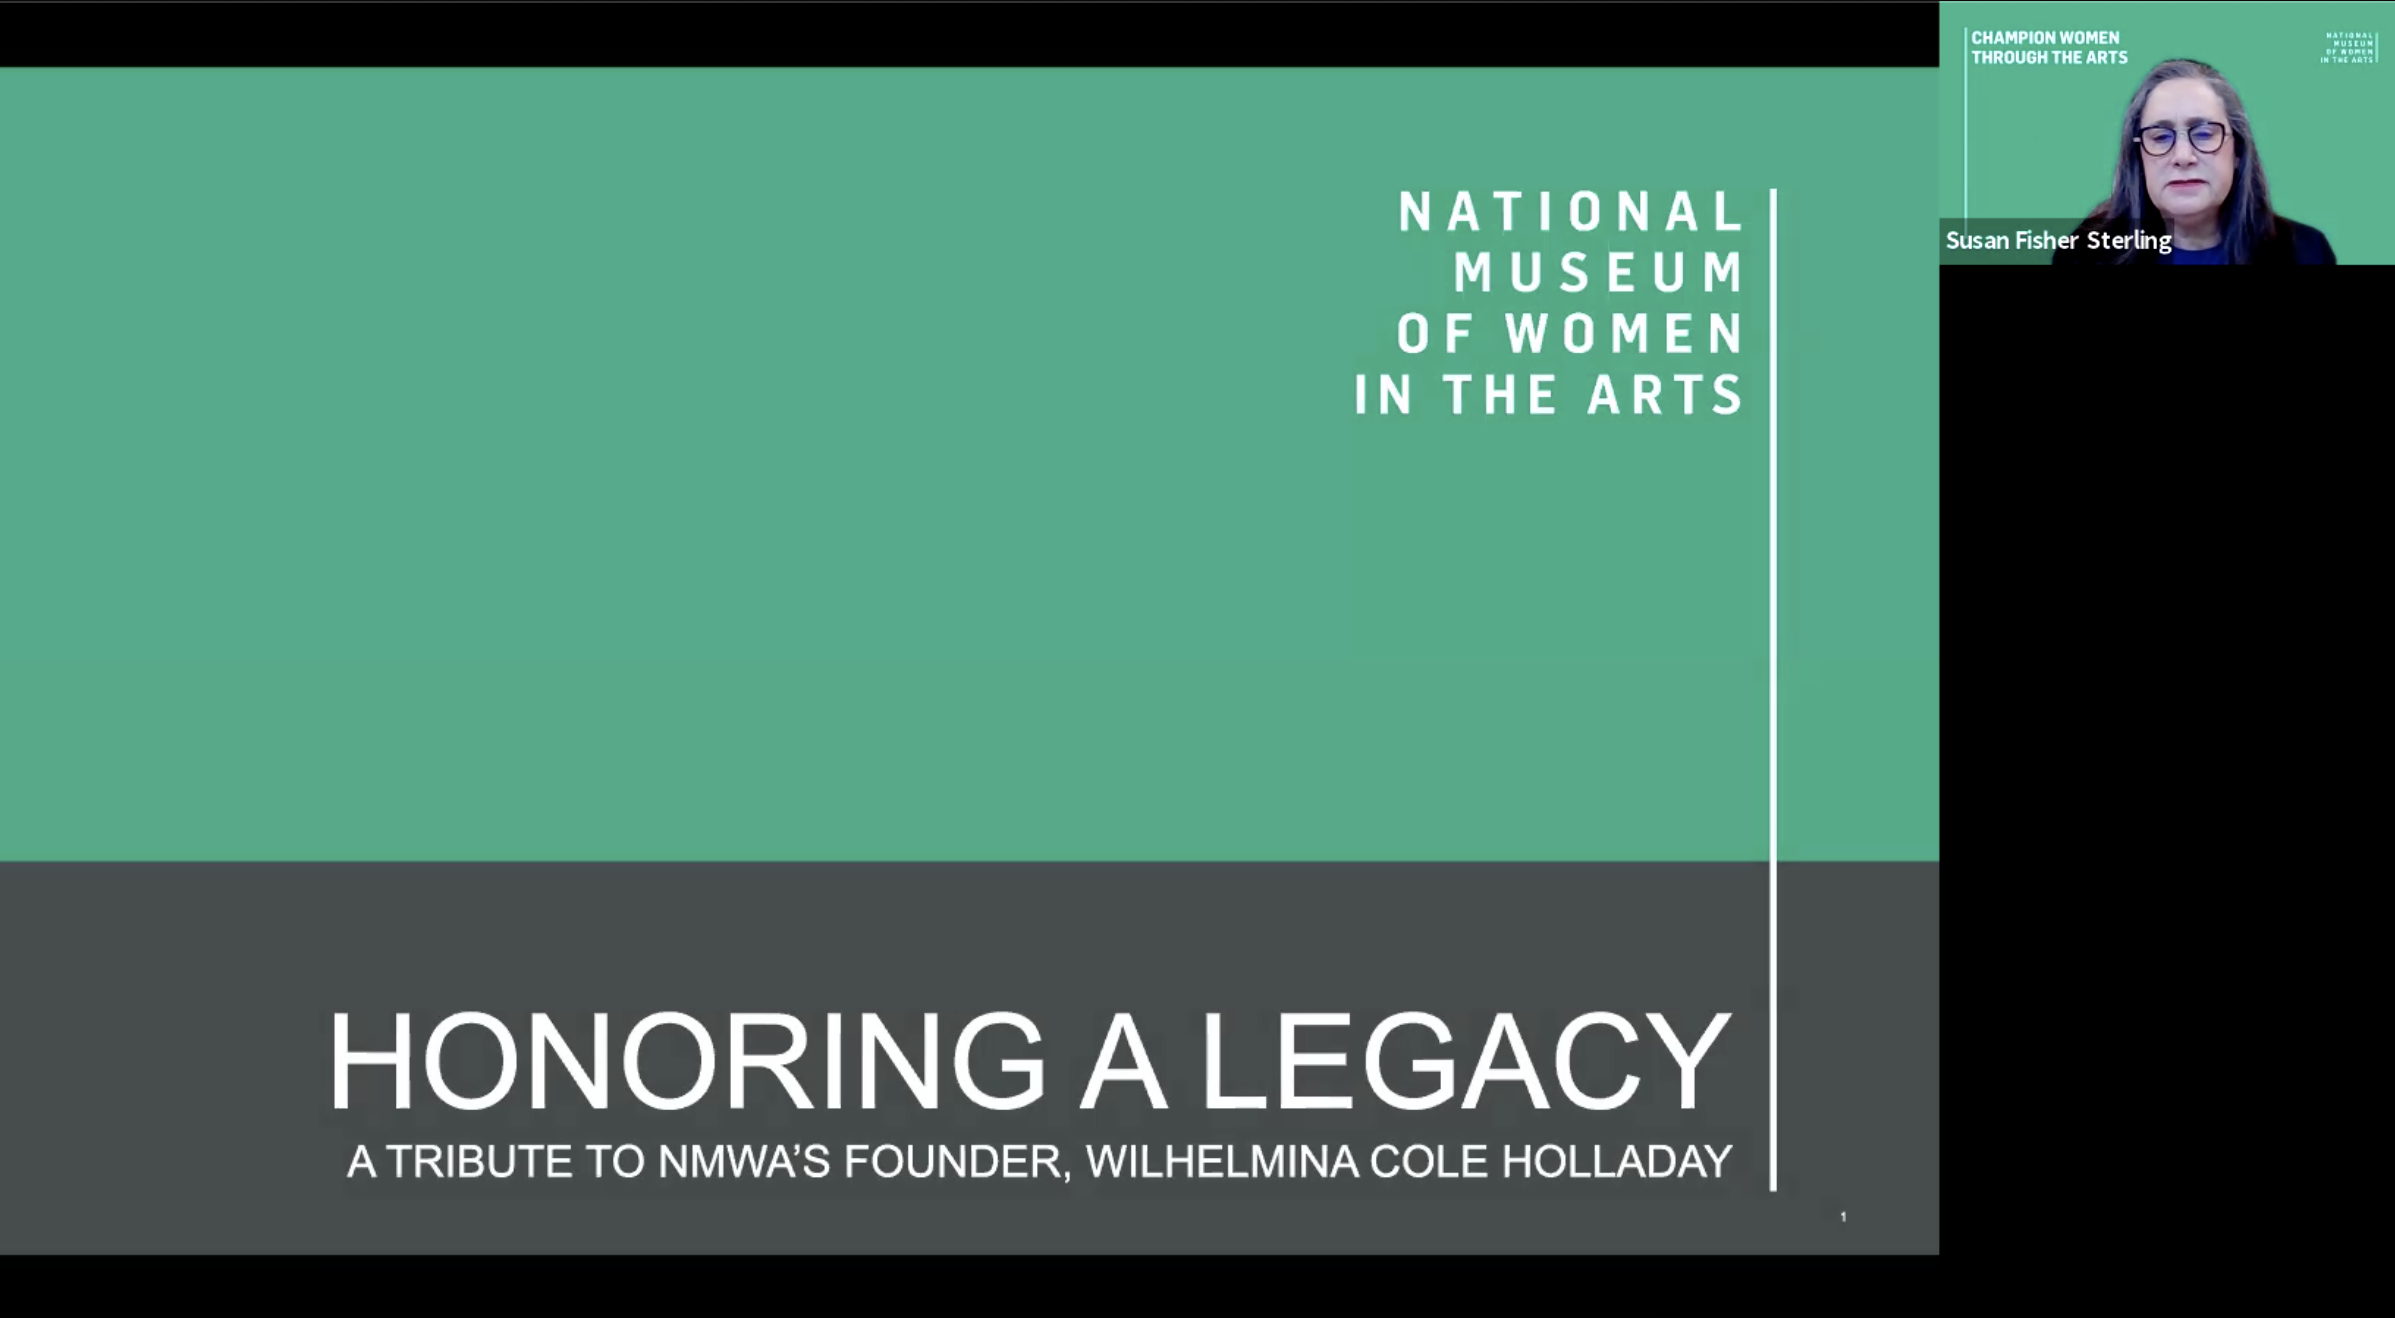 Title slide for a powerpoint presentation during a Zoom event for NMWA's Founder, Wilhelmina Cole Holladay